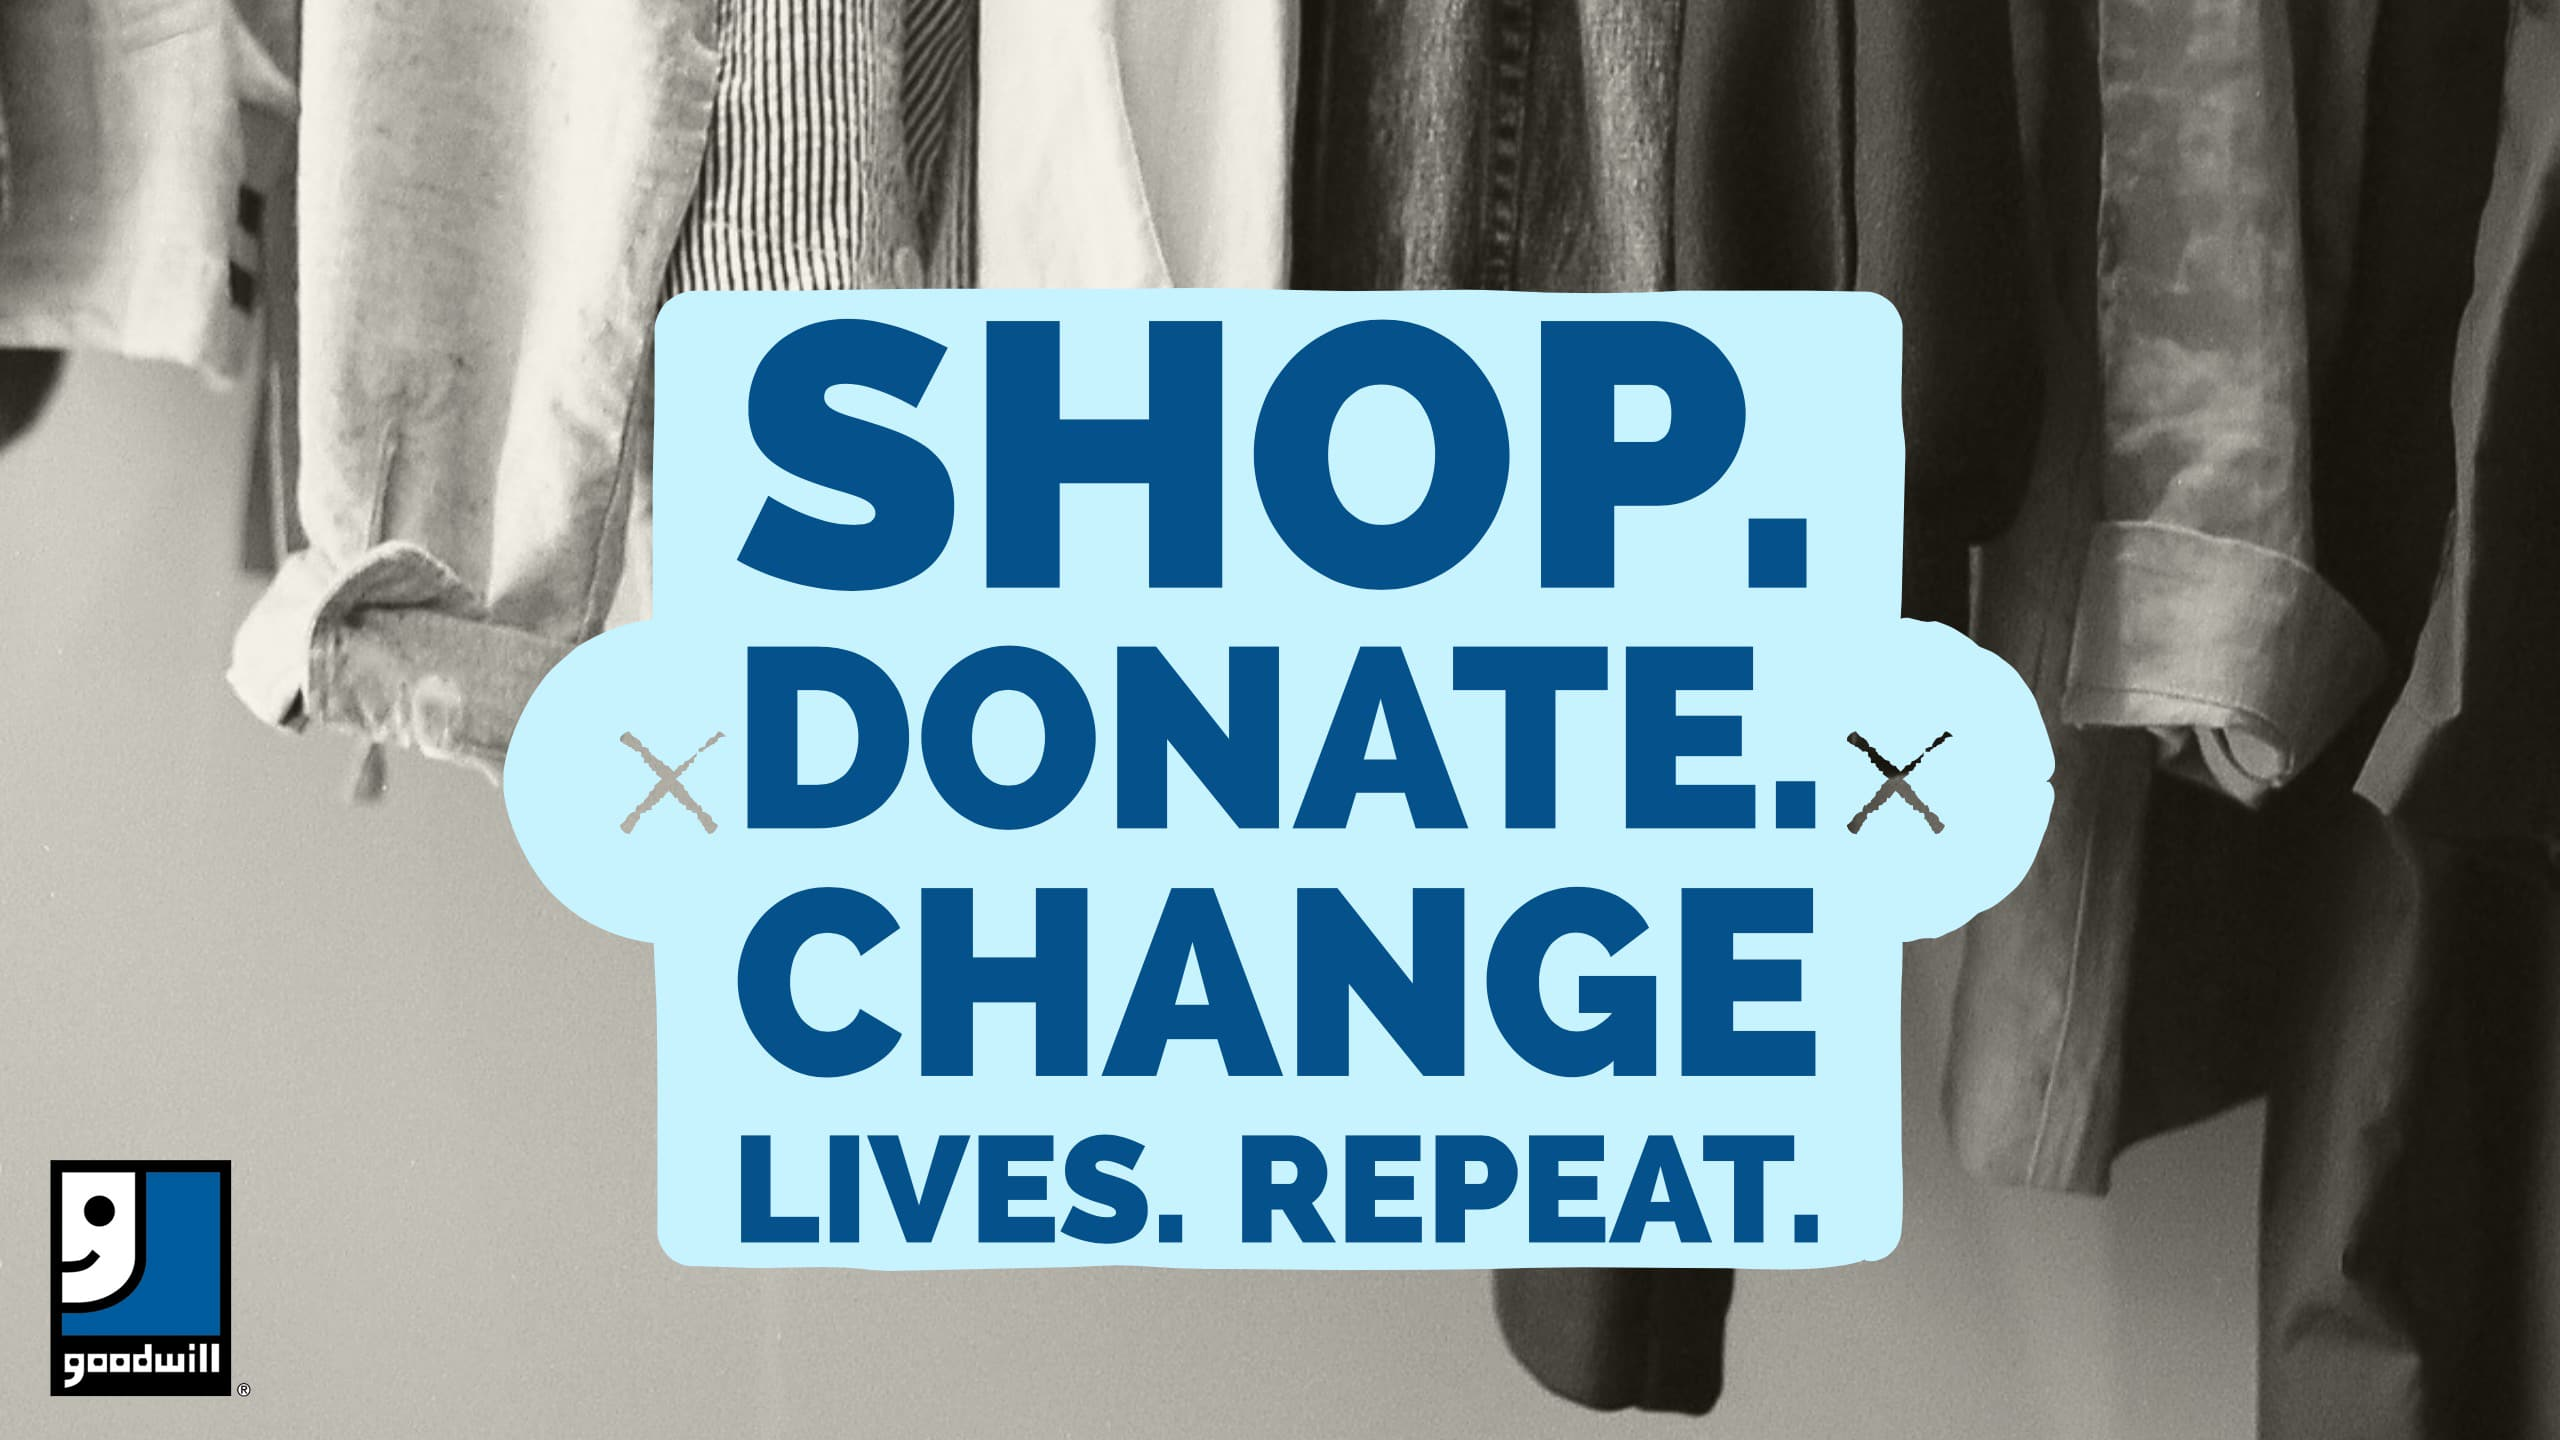 Shop. Donate. Change Lives. Repeat.